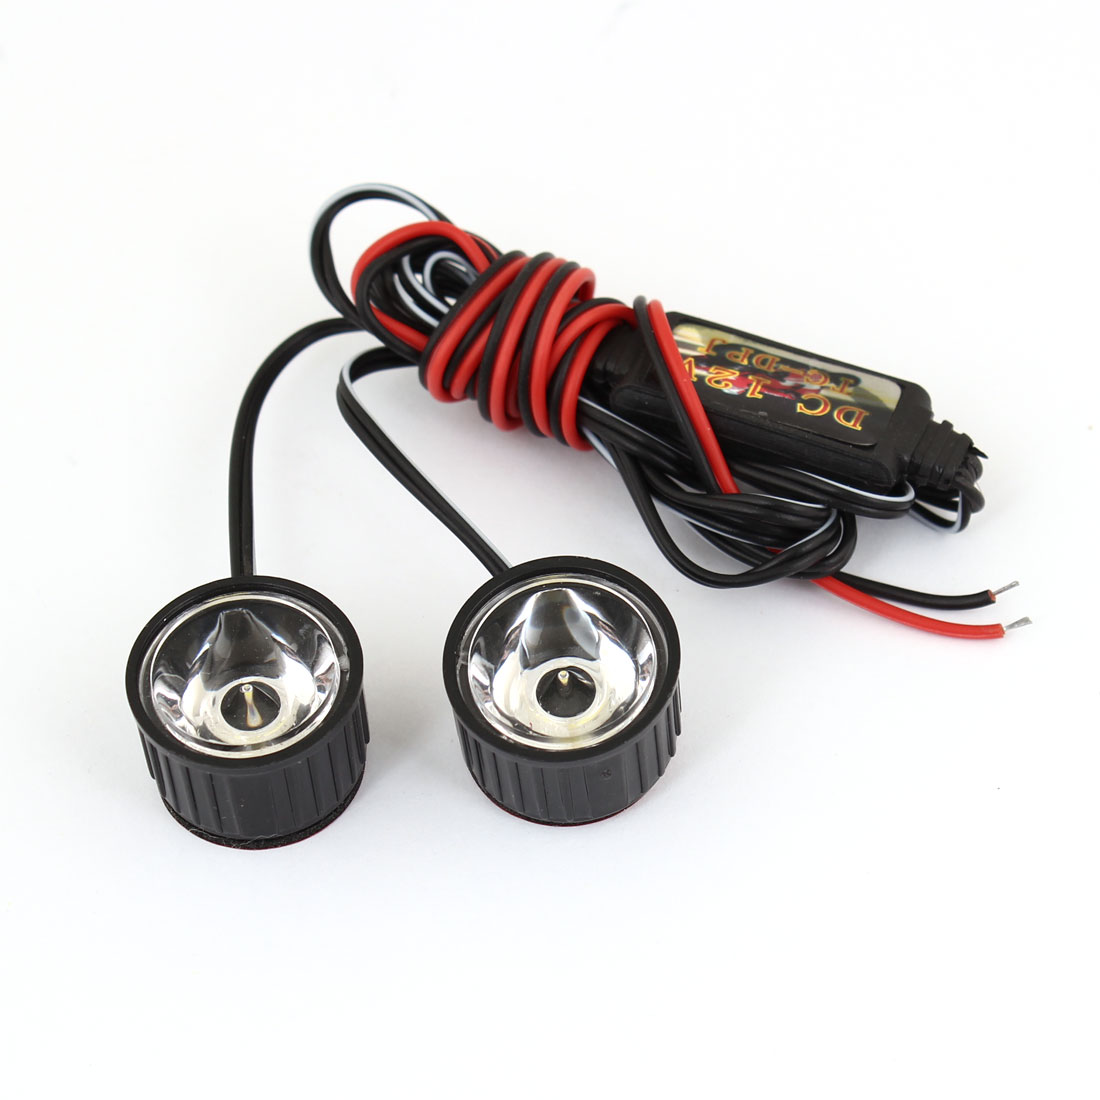 2 Pcs Eagle Eye Round Shape LED White Strob Flash Light for Motorcycle DC 12V